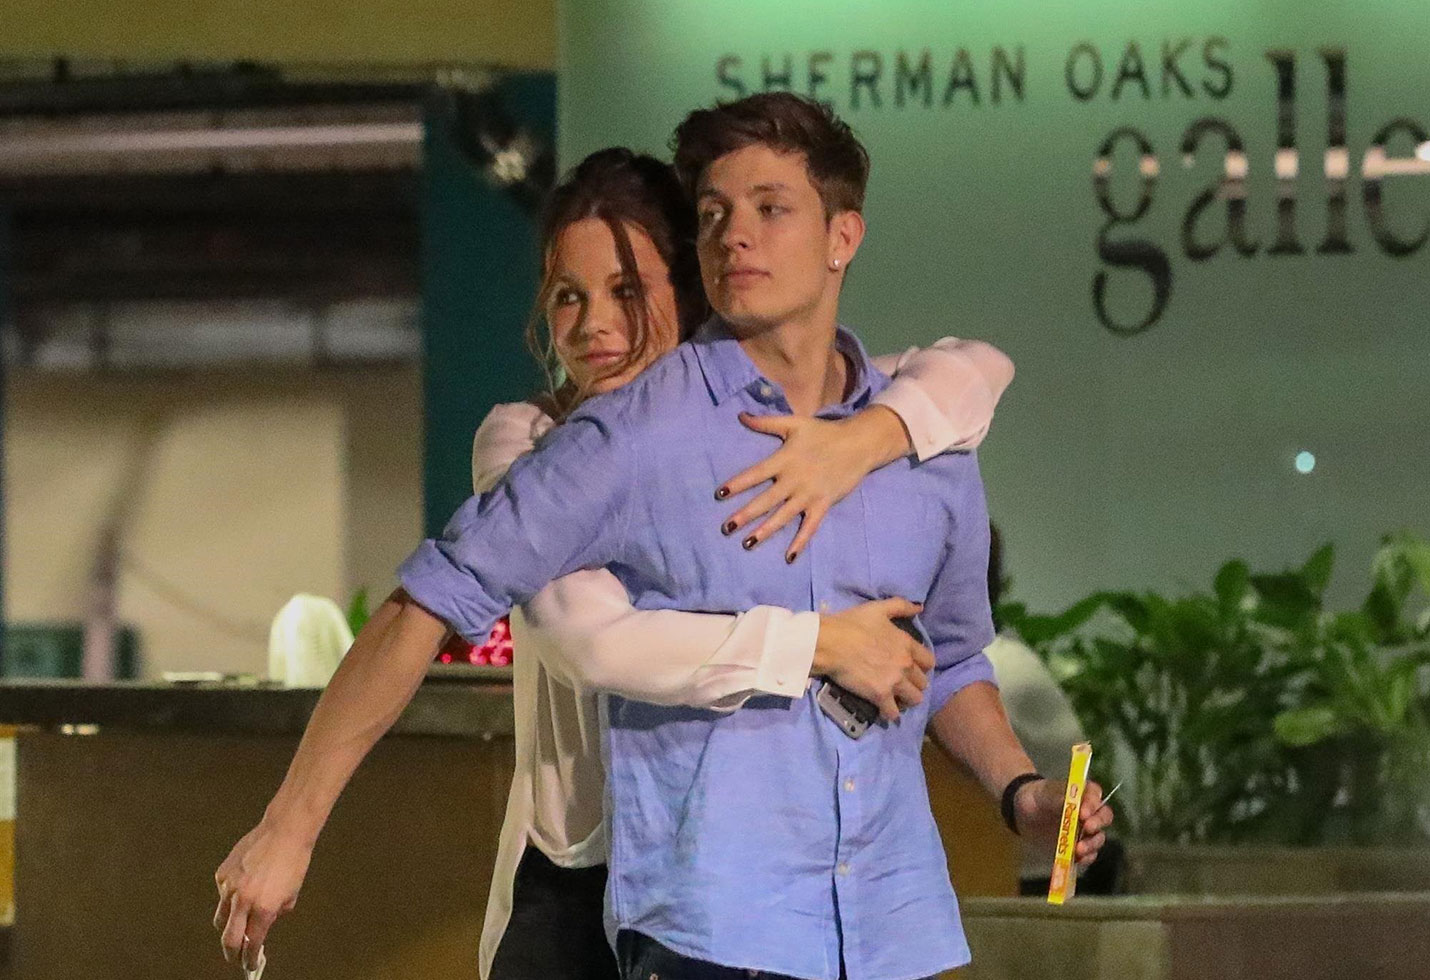 Kate beckinsale dating younger man matt rife